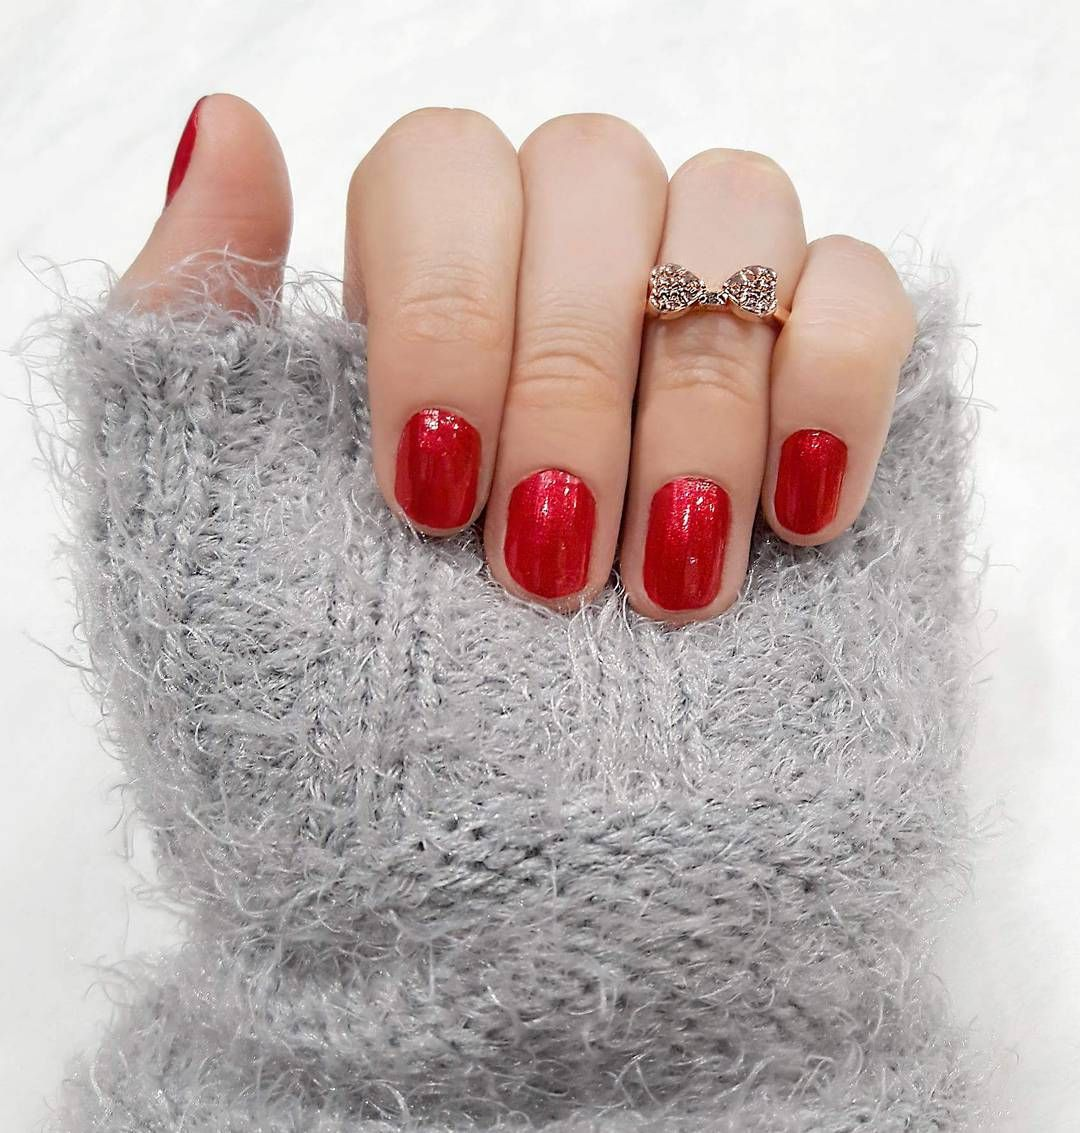 Pin by Alisson sz on Nails ❤ | Pinterest | Ootd, Jewel and Winter